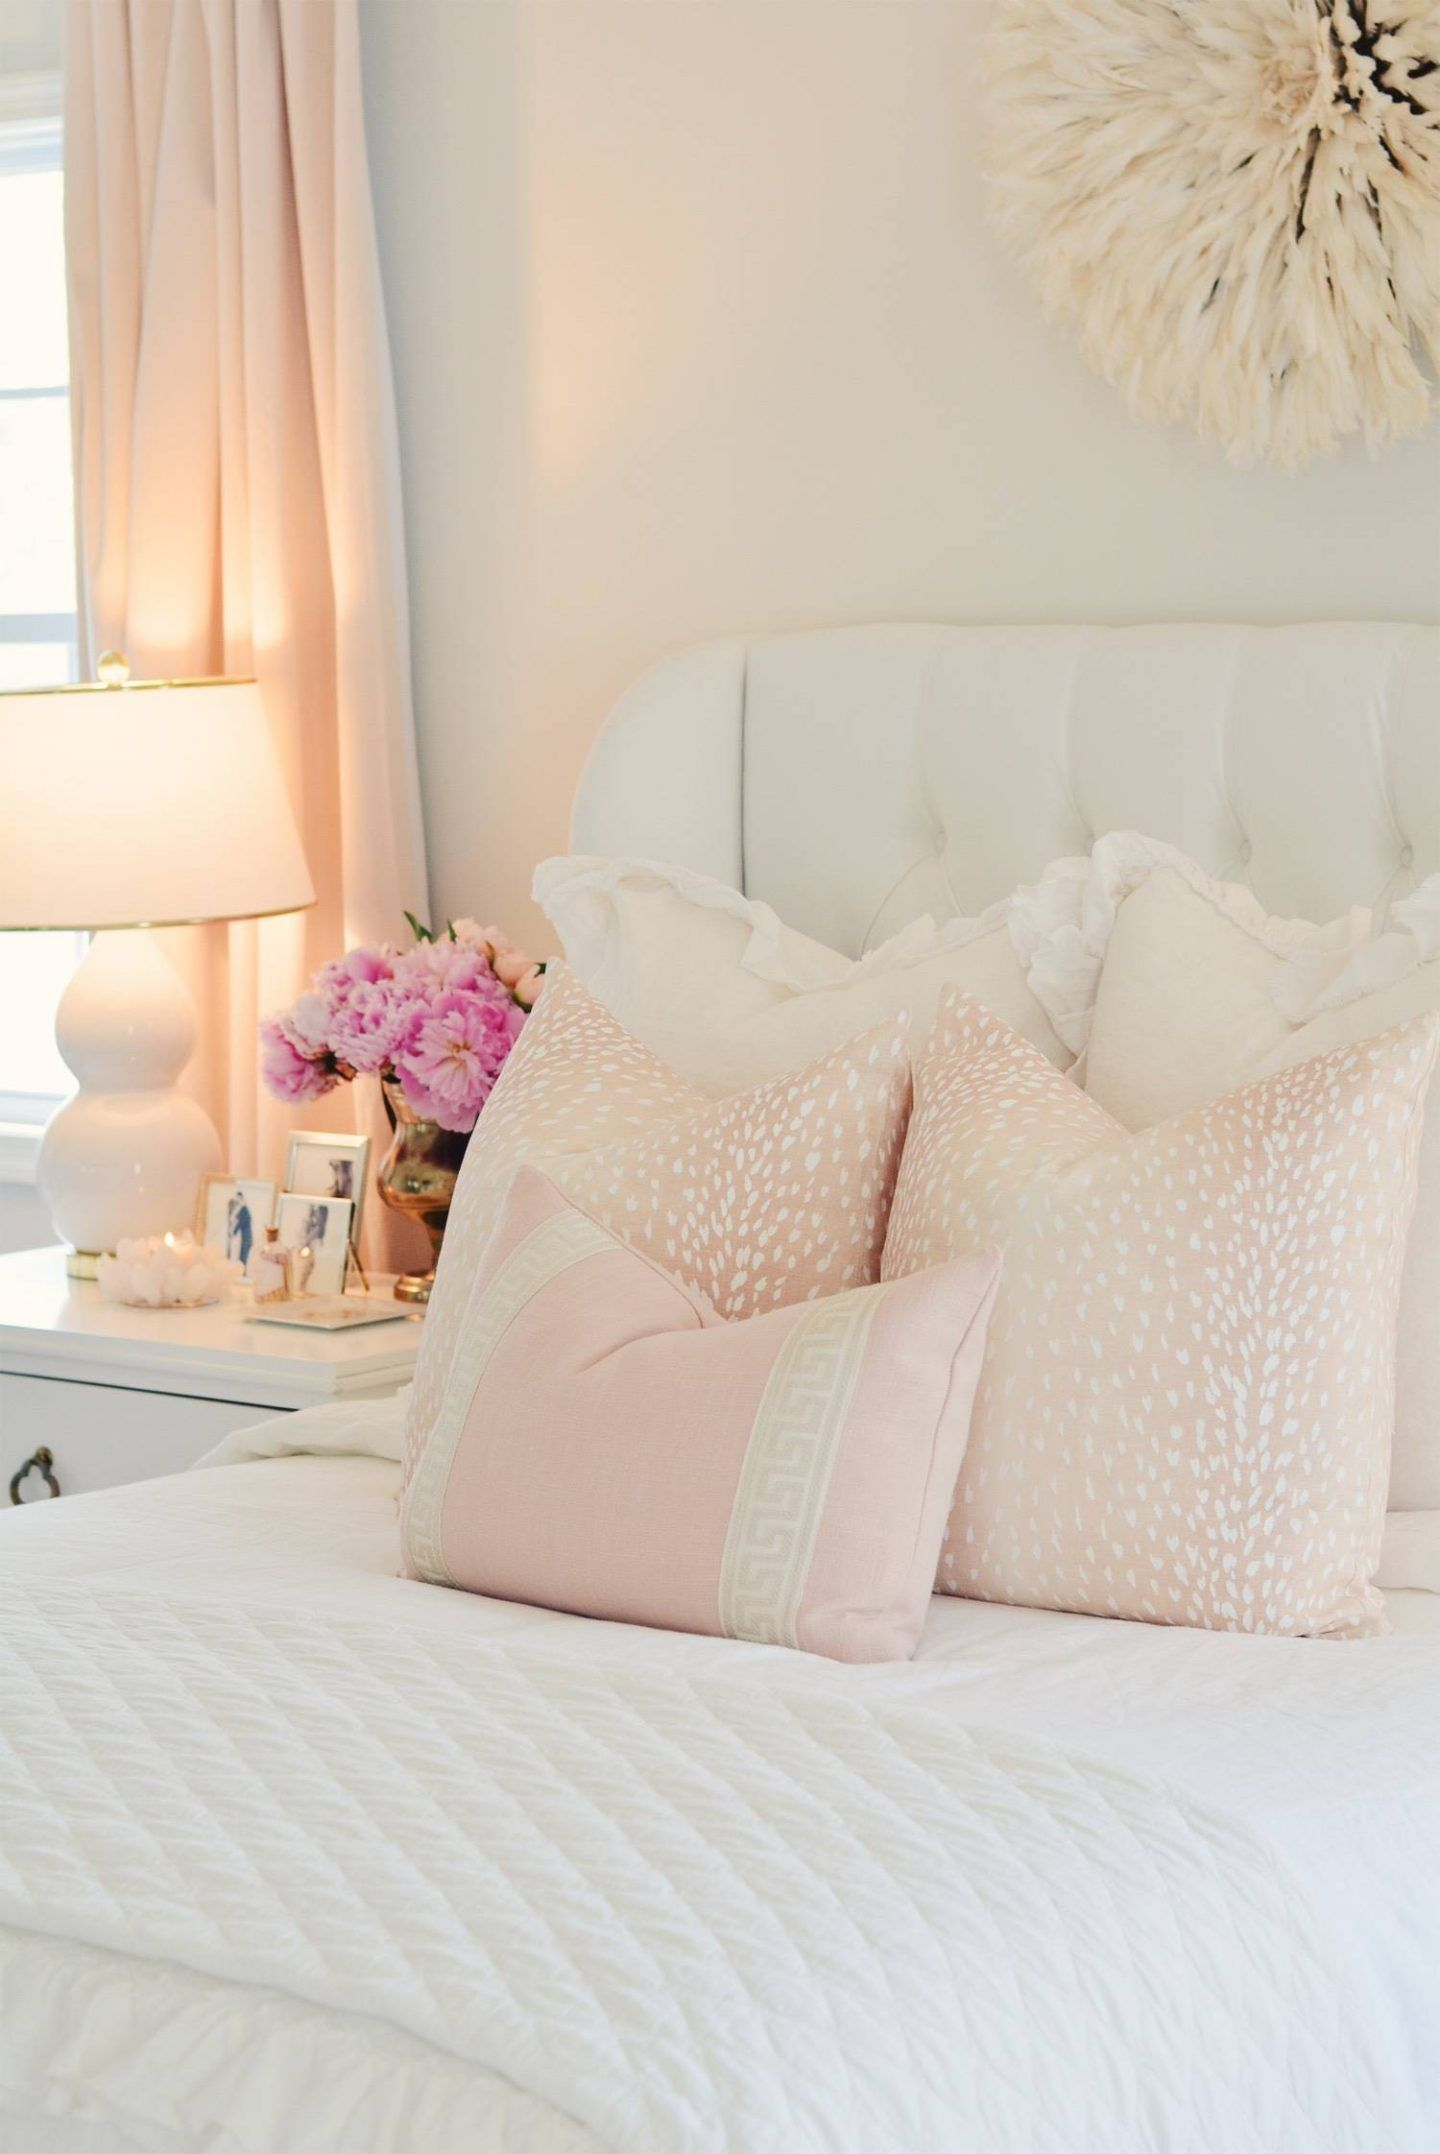 Elegant White Master Bedroom Blush Decorative Pillows White